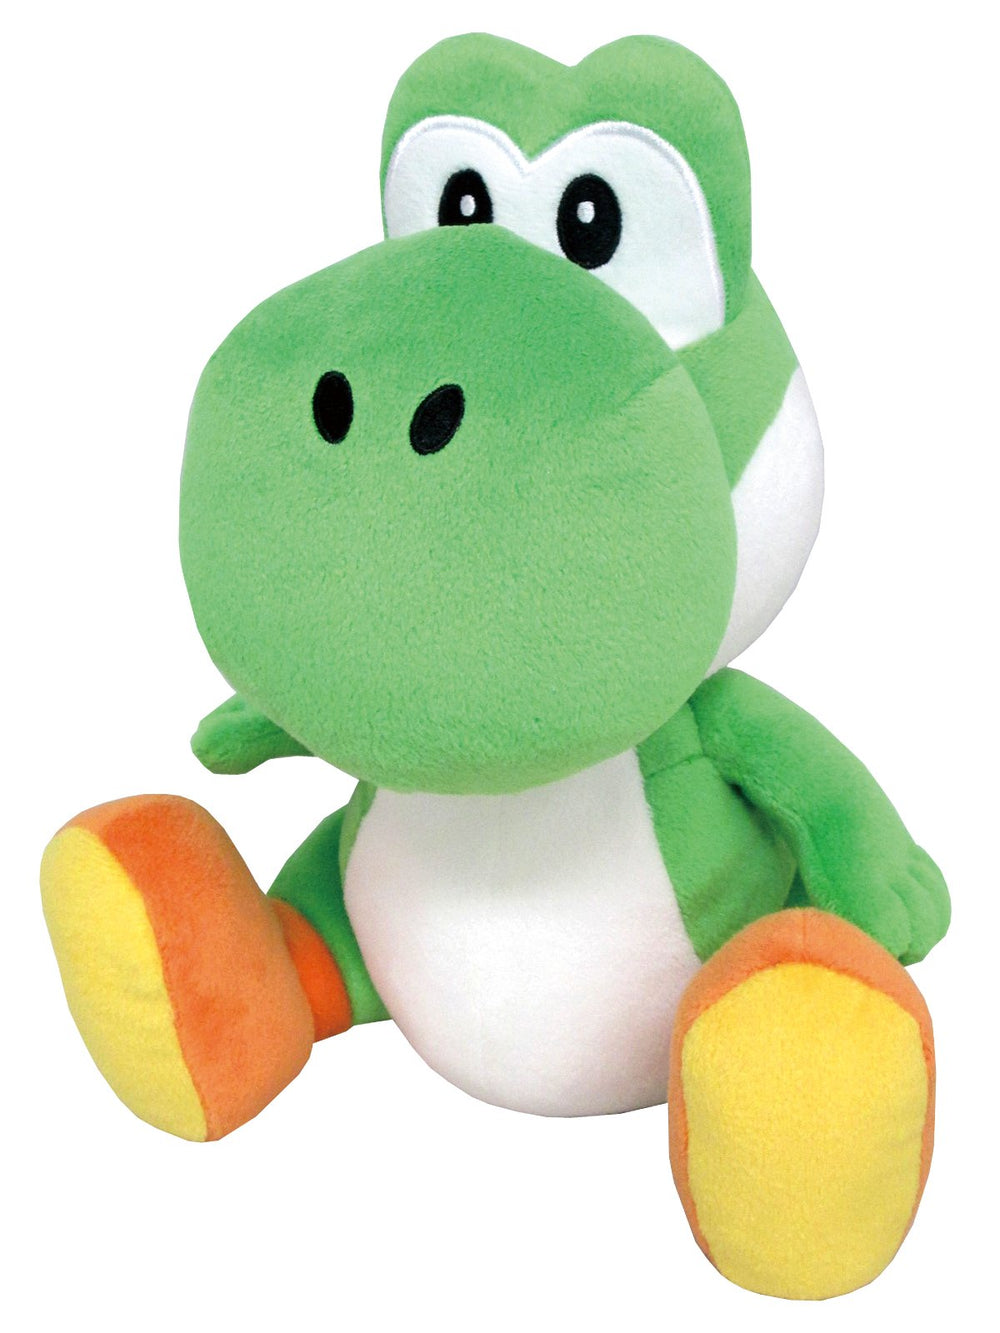 Super Mario All Star Collection Yoshi (Green) 7